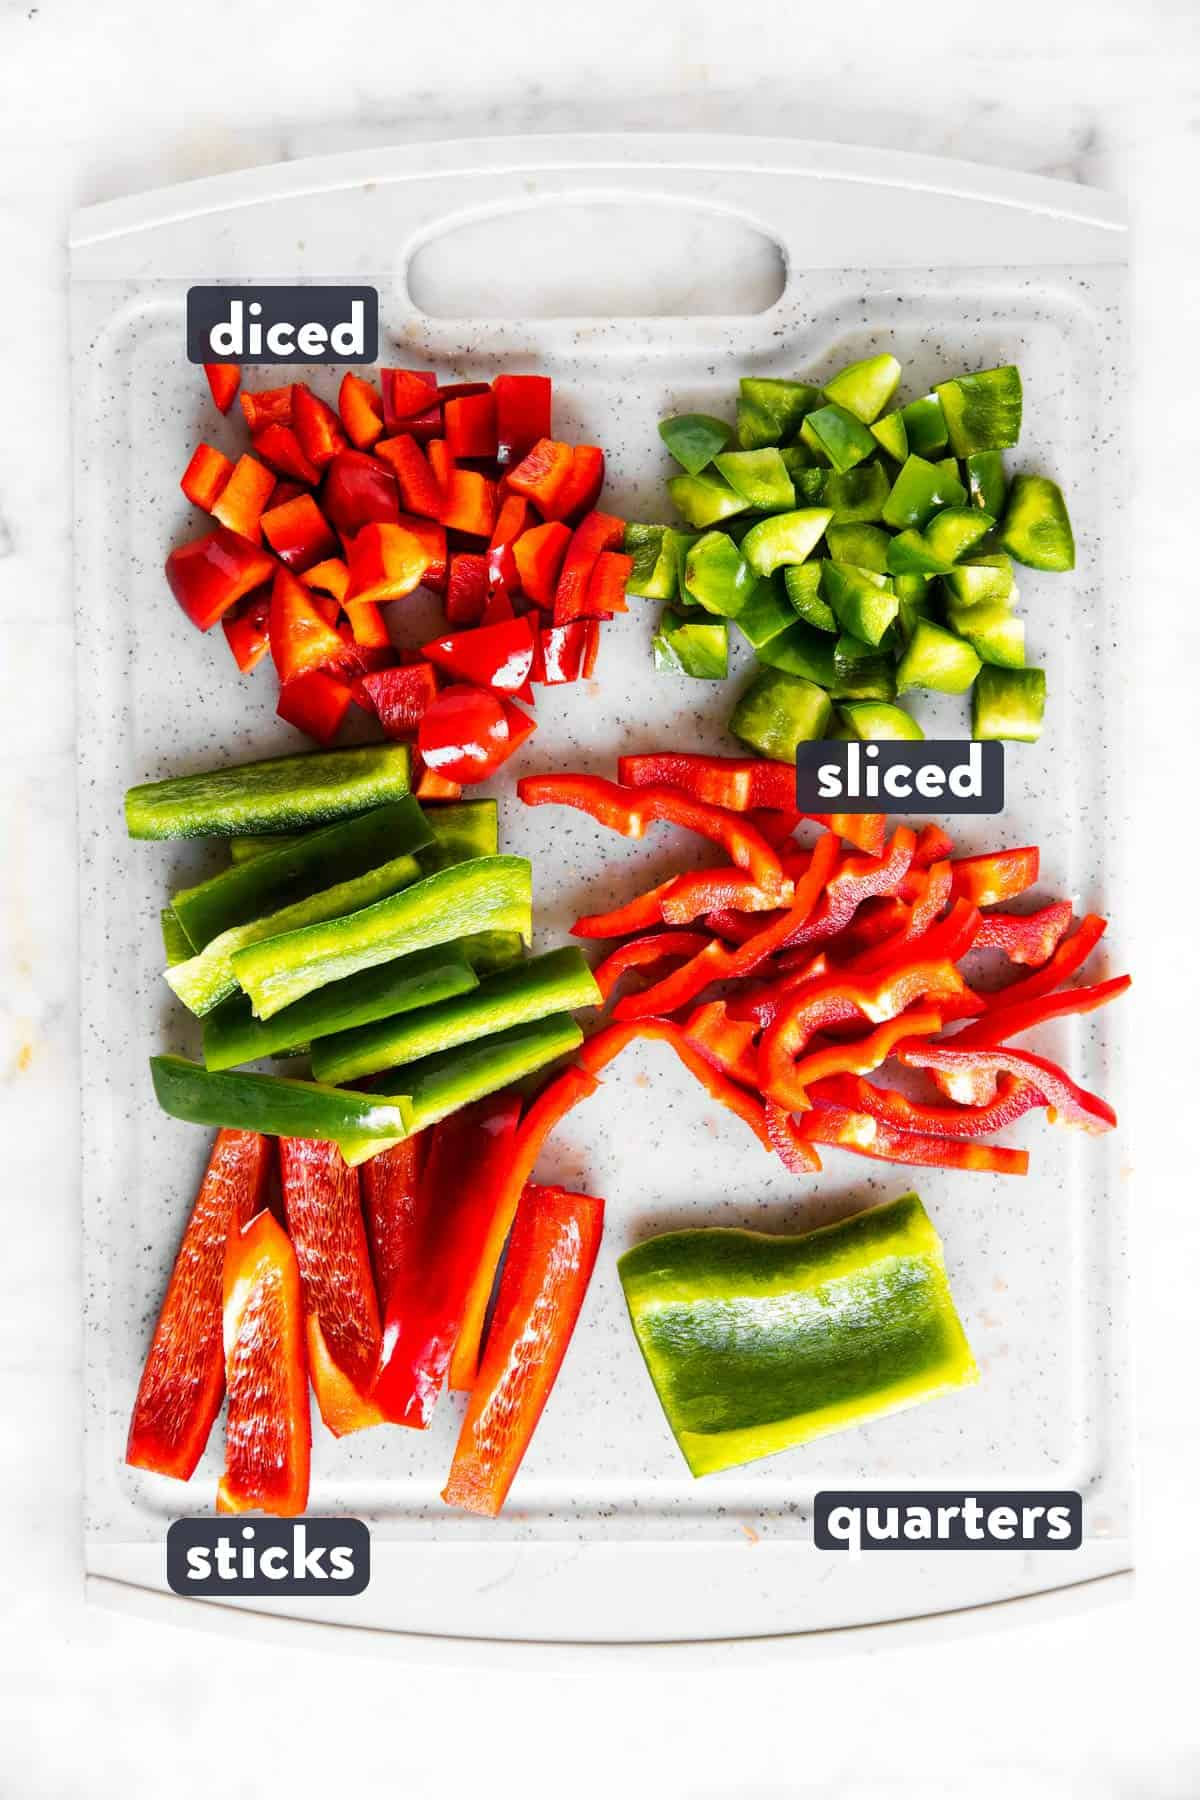 differently cut red and green bell pepper on grey chopping board with text labels